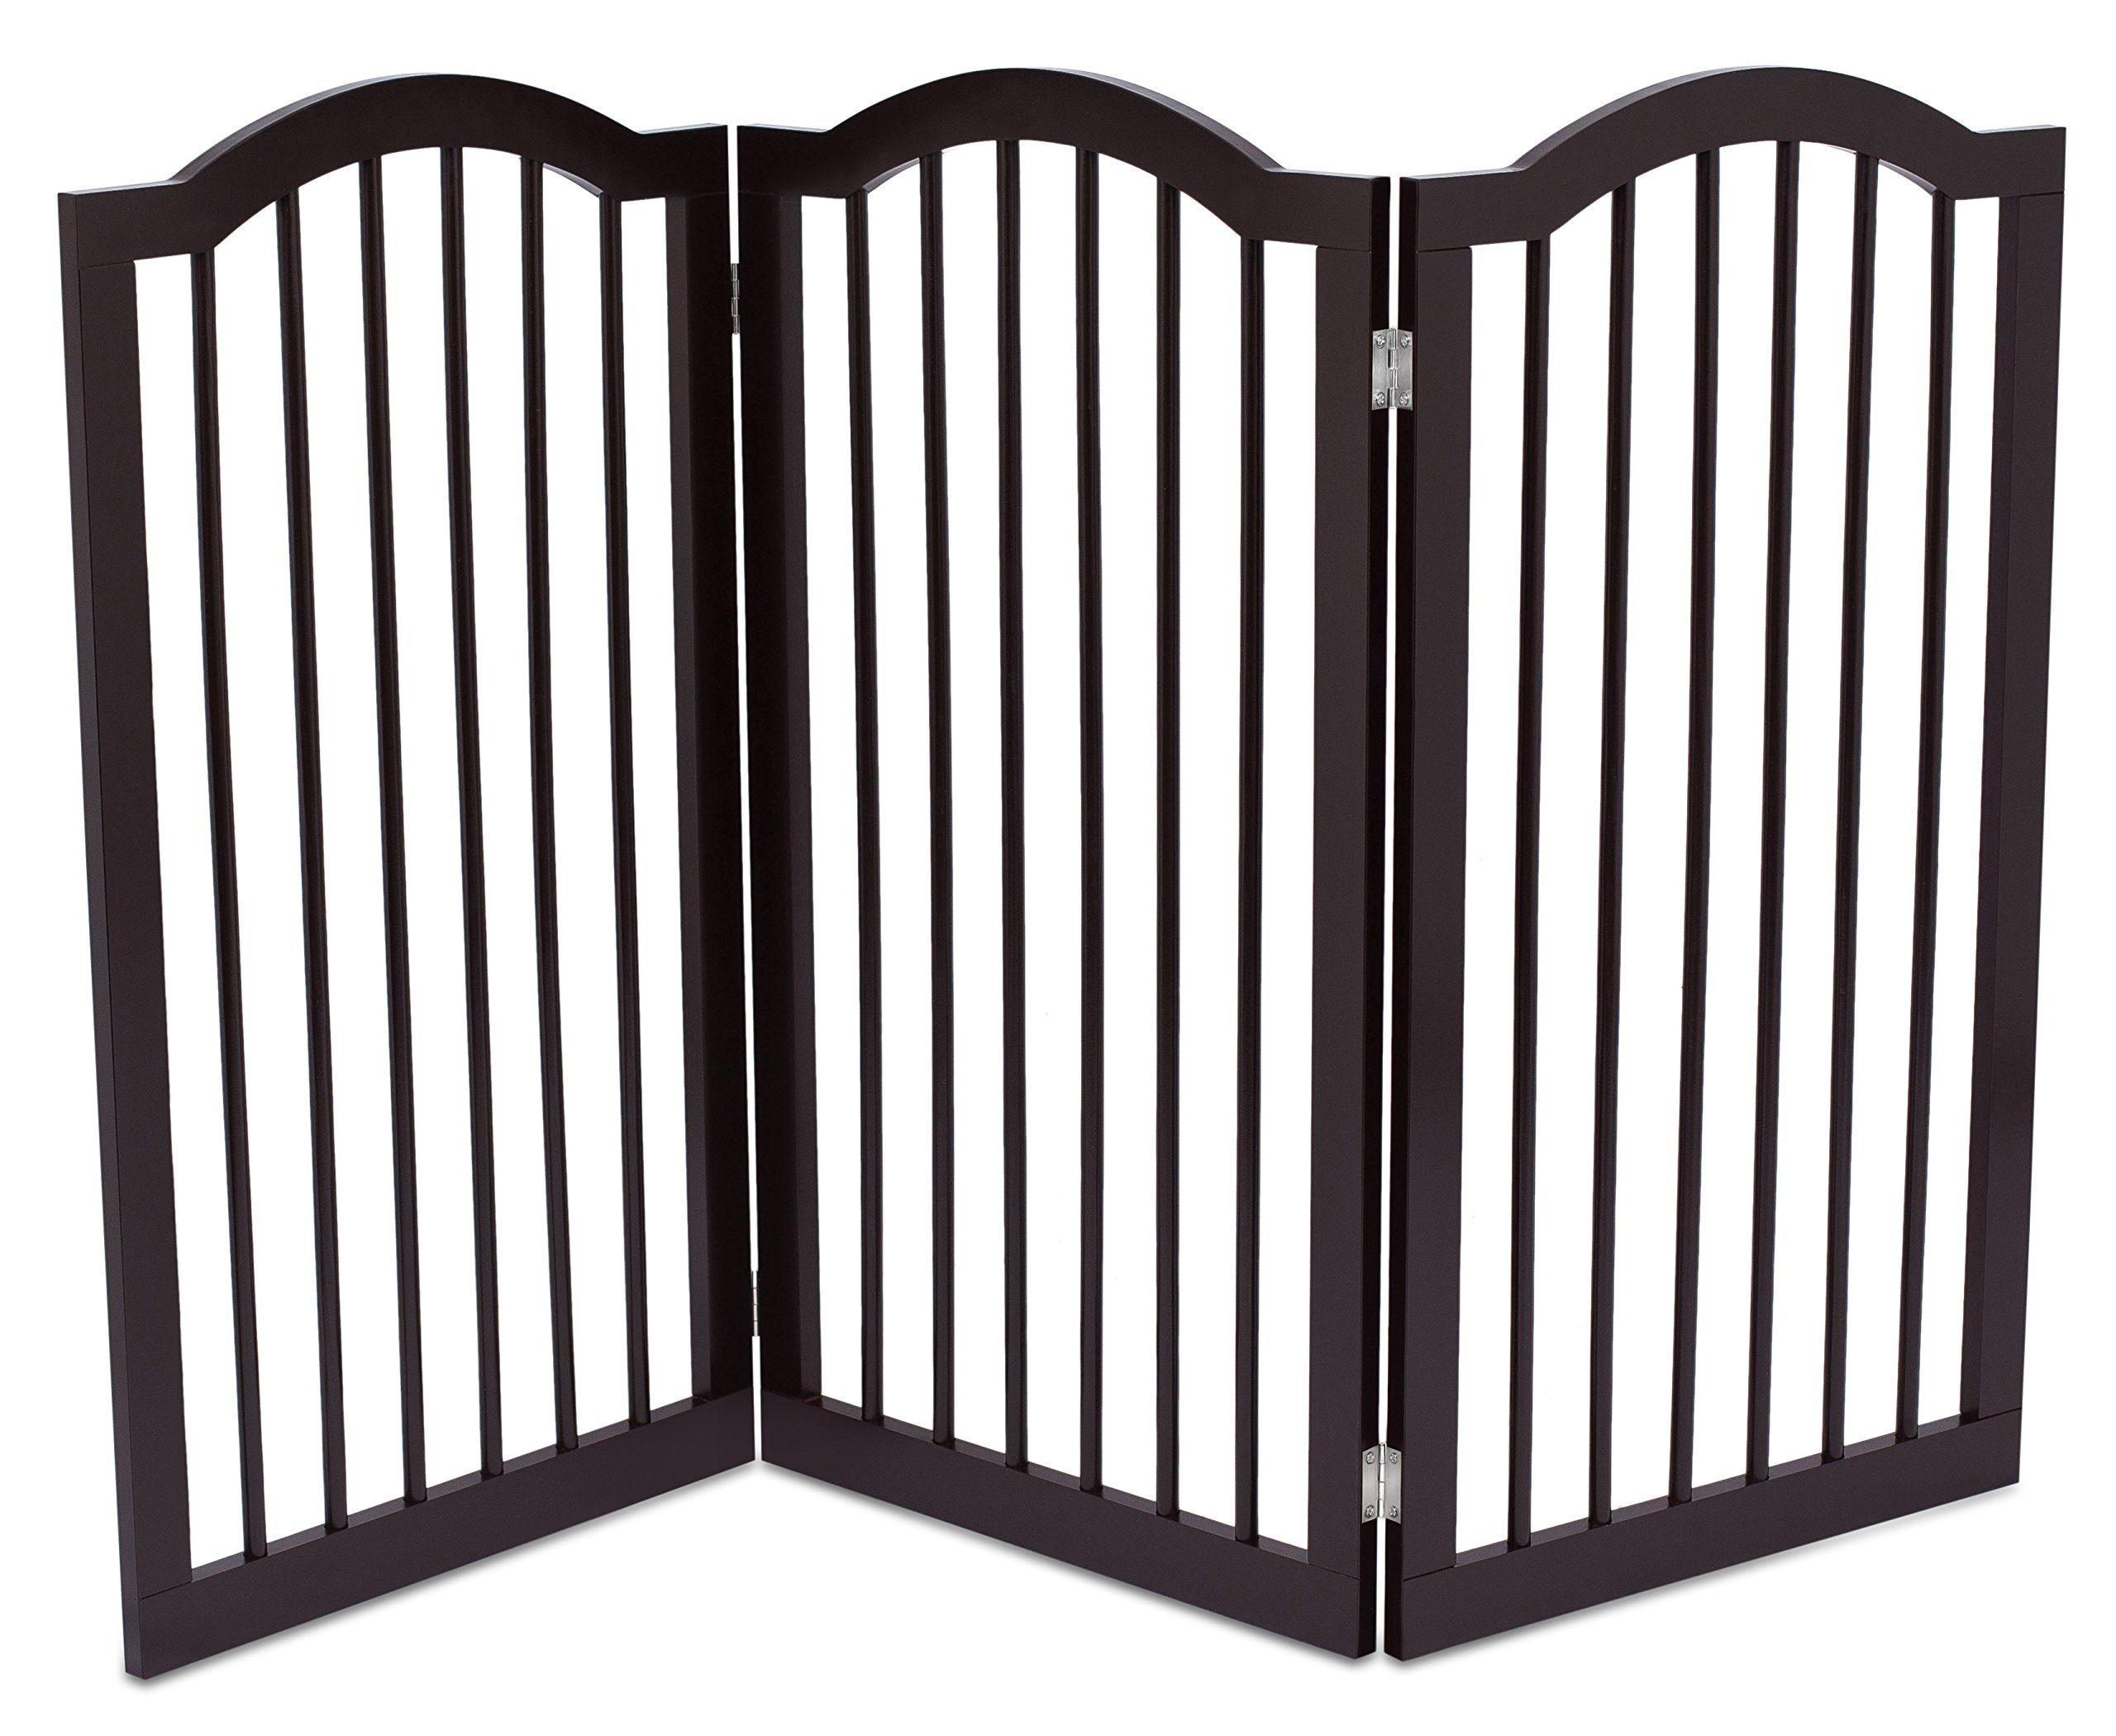 dog safety gate stairs barrier wooden tall fence wall door. Black Bedroom Furniture Sets. Home Design Ideas